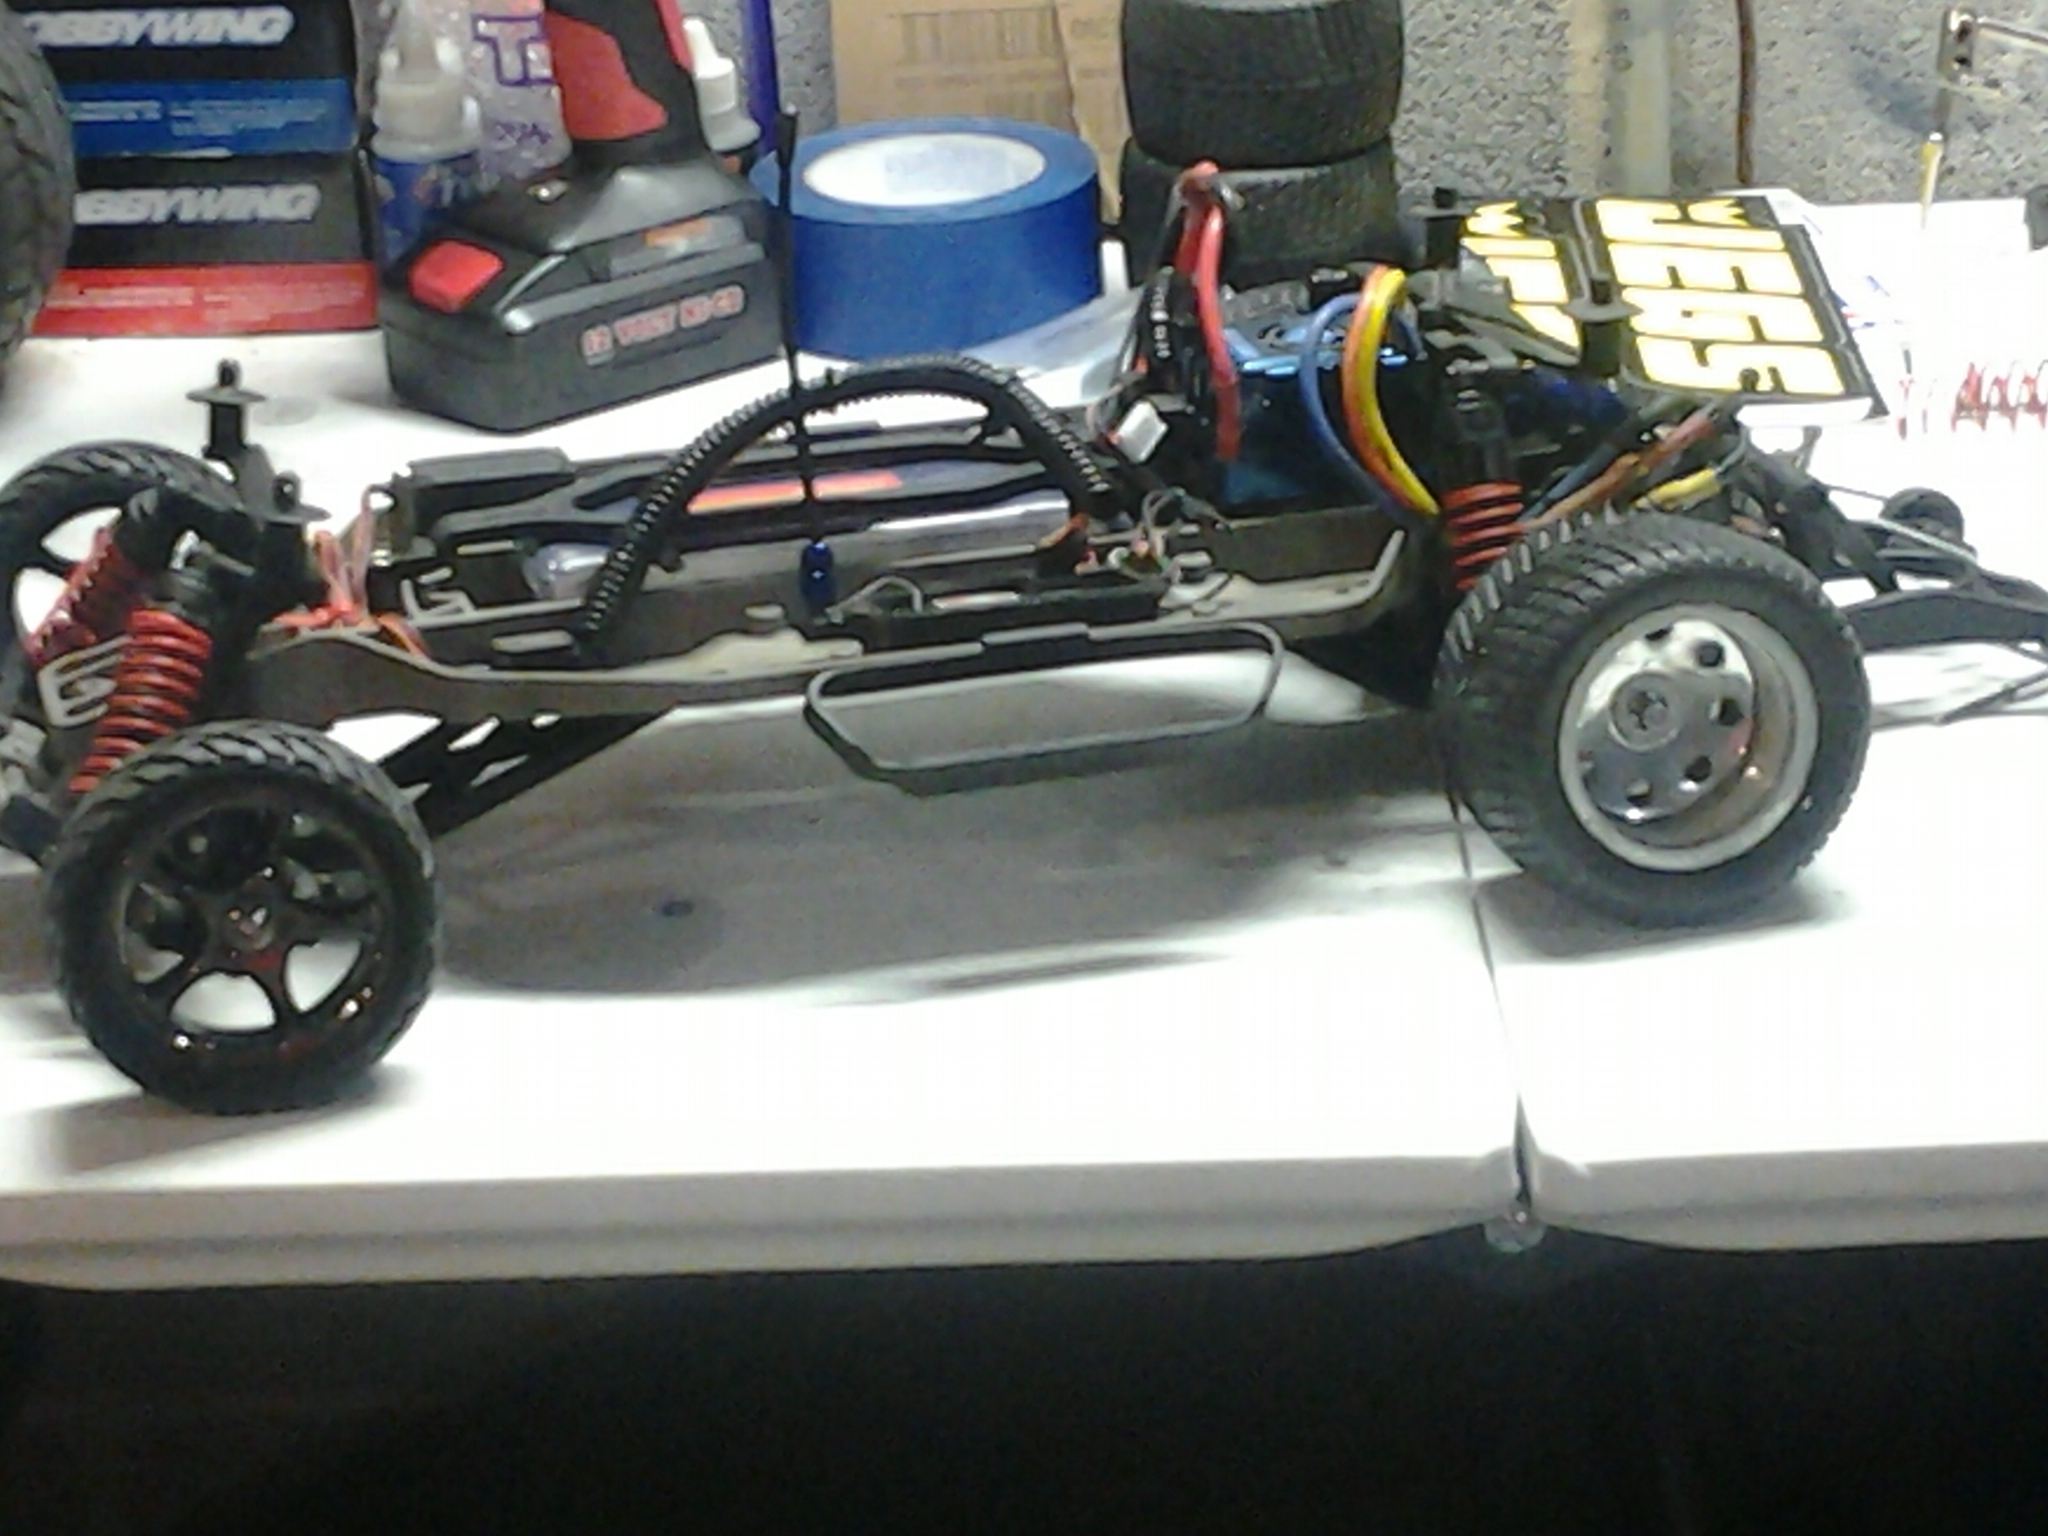 My Traxxas Slash Dragster Rcu Forums Screensaver Used For Sale Here Are Some Pictures With The Body Off And On Made Adjustments Lowered Rear More Add Bandit Arms Driveshafts